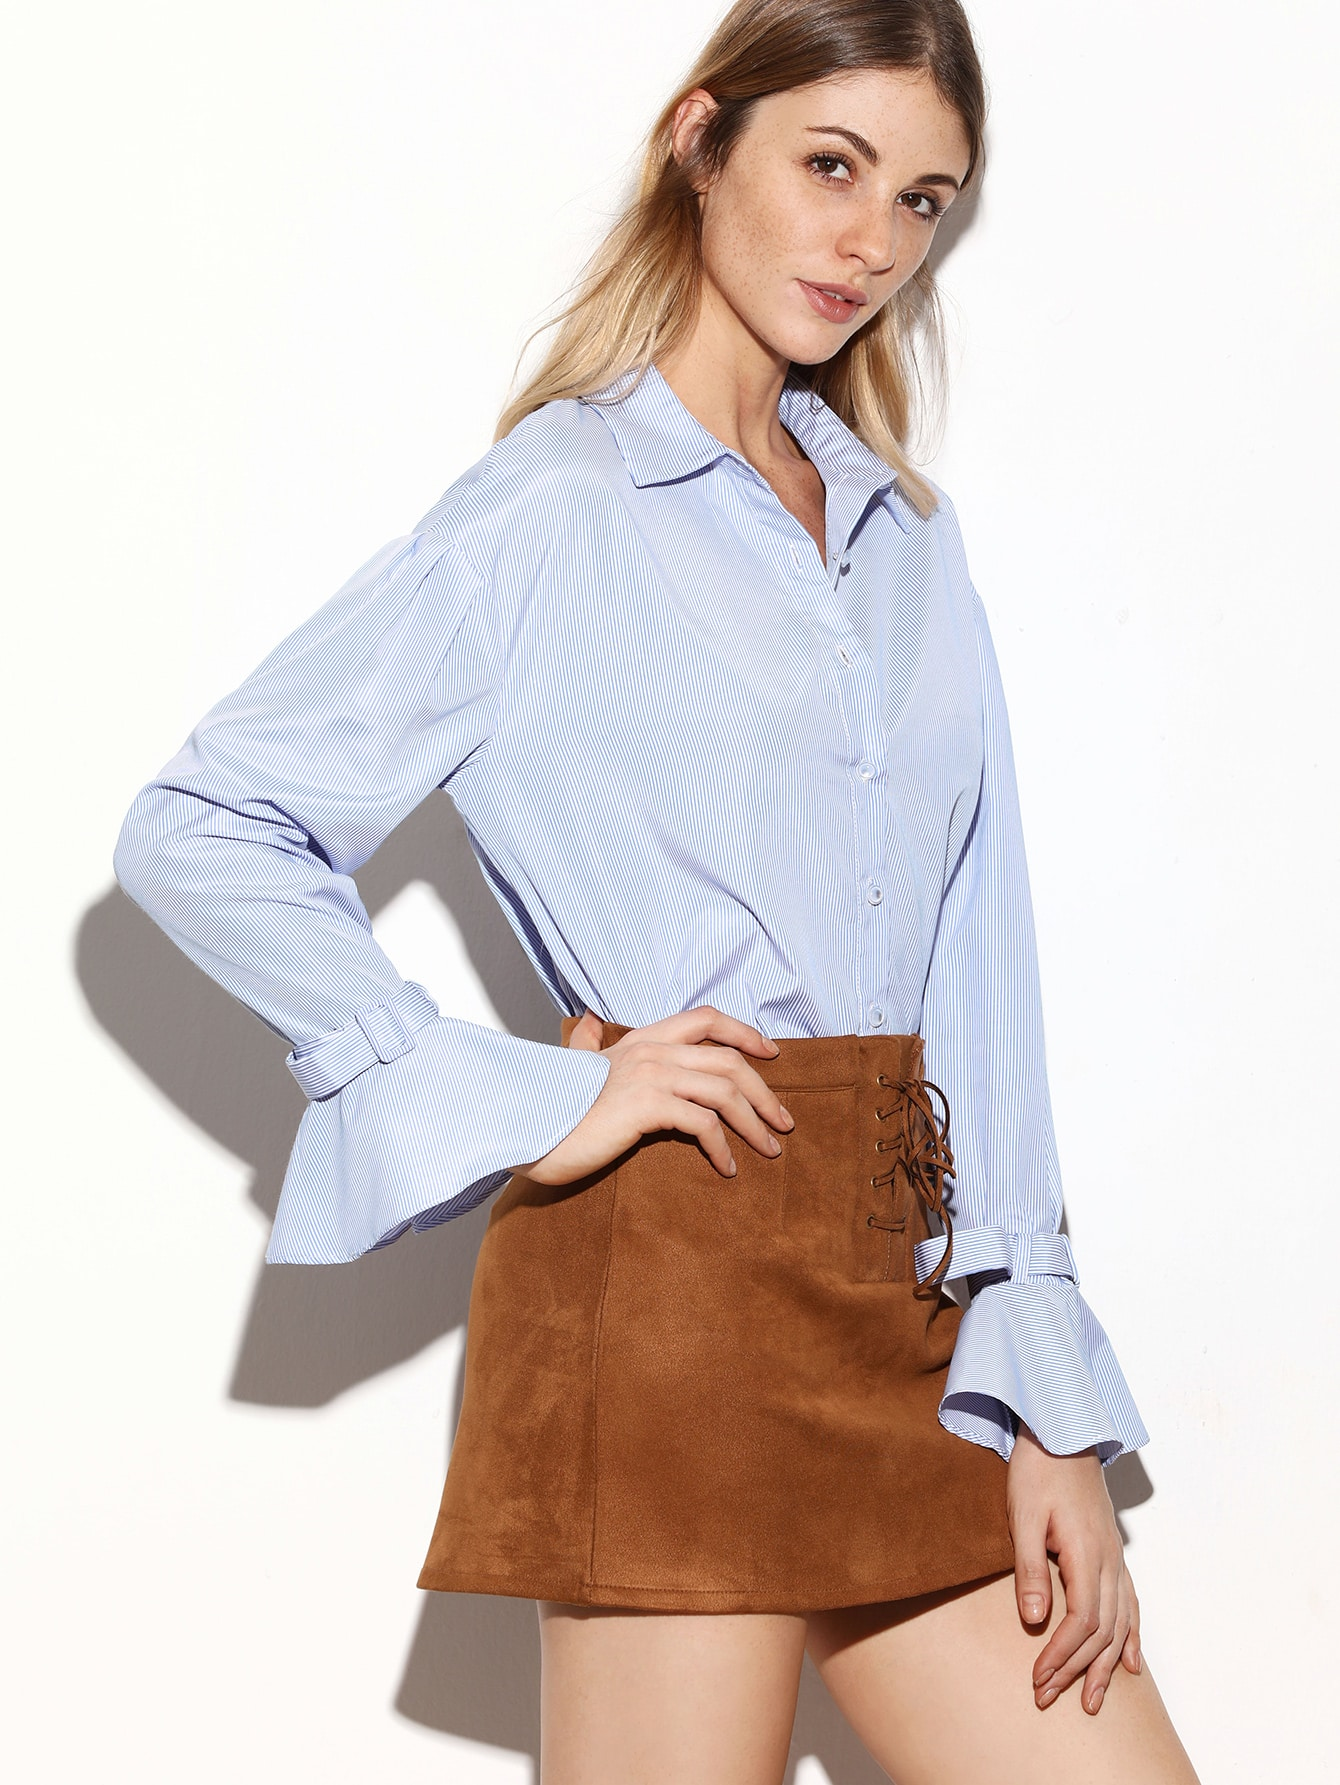 Blue Vertical Striped Belted Ruffle Cuff BlouseBlue Vertical Striped Belted Ruffle Cuff Blouse<br><br>color: Blue<br>size: L,M,S,XS